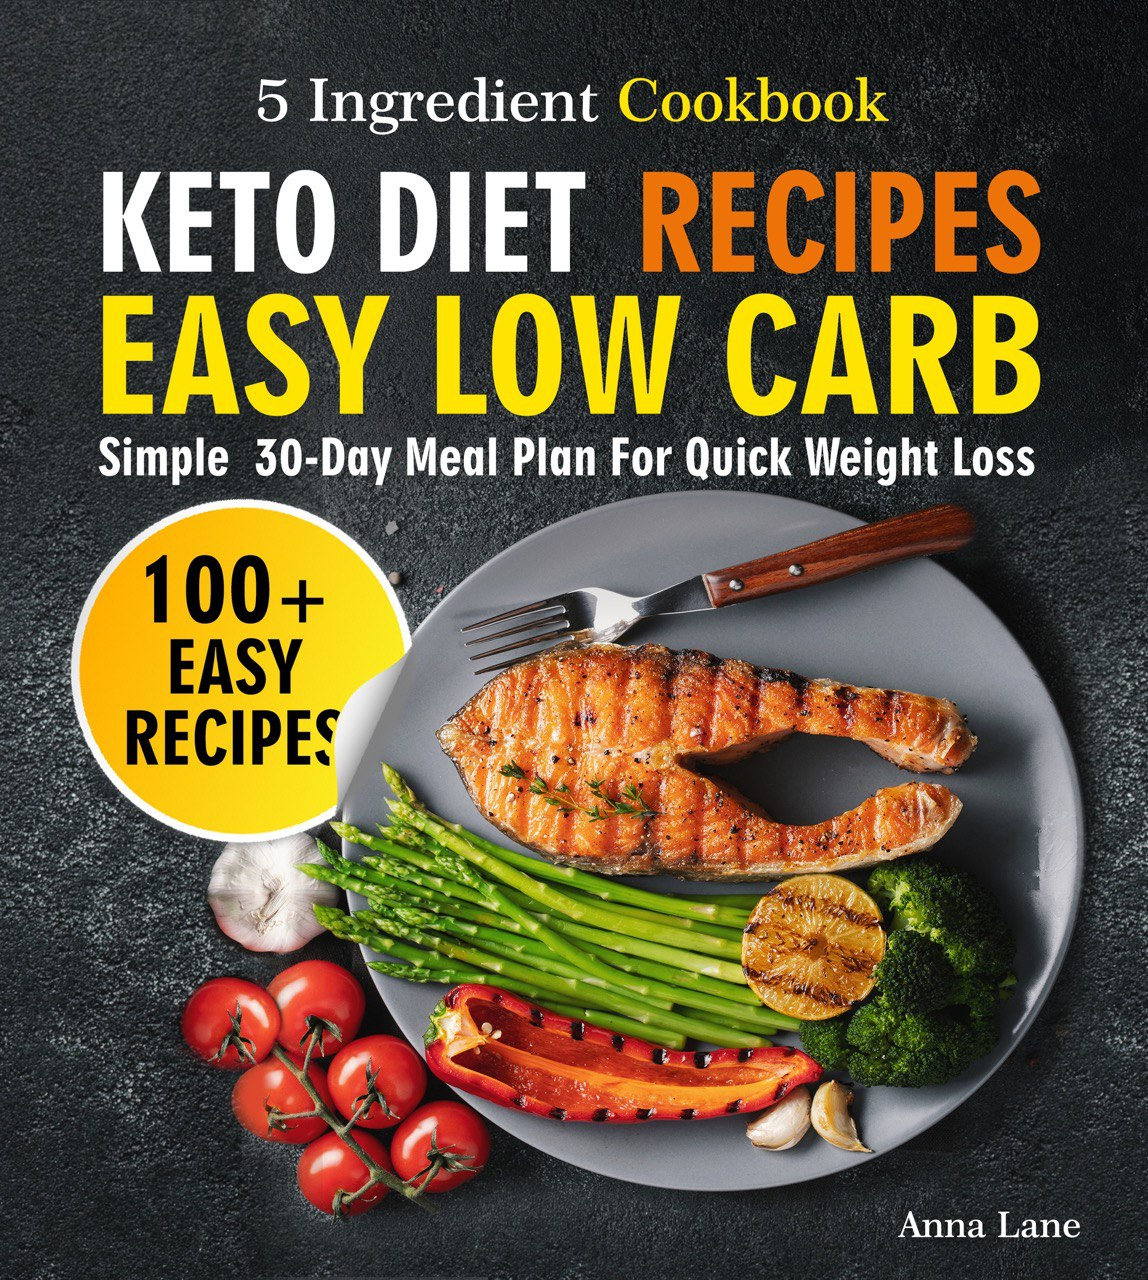 Keto Diet Recipes. Easy, Low Carb, 5-Ingredient Cookbook ...